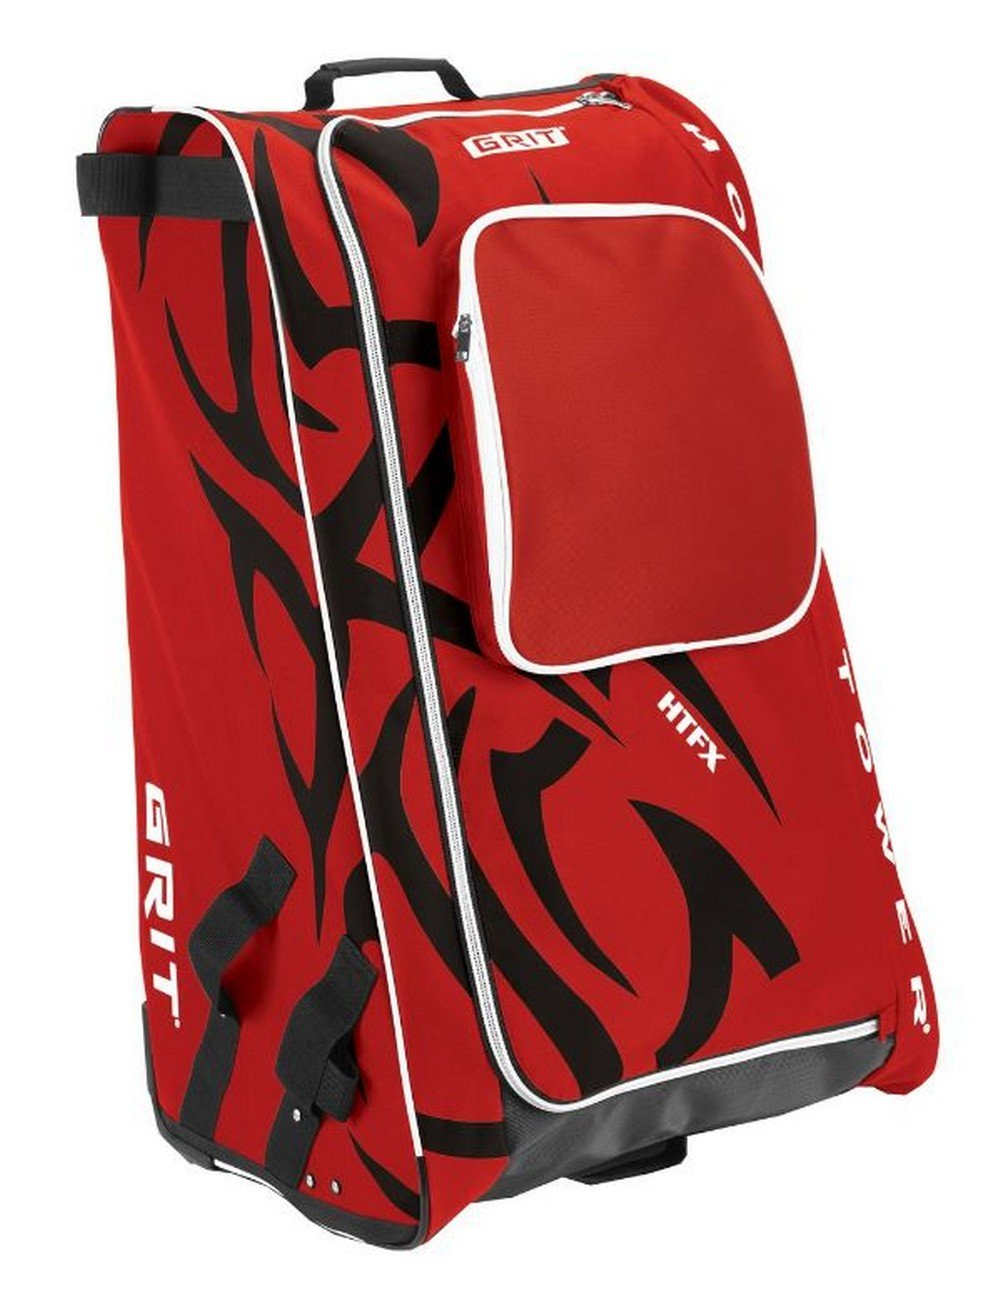 Grit Inc HTFX Hockey Tower 33'' Wheeled Equipment Bag Red HTFX033-CH (Chicago) … by Grit (Image #1)